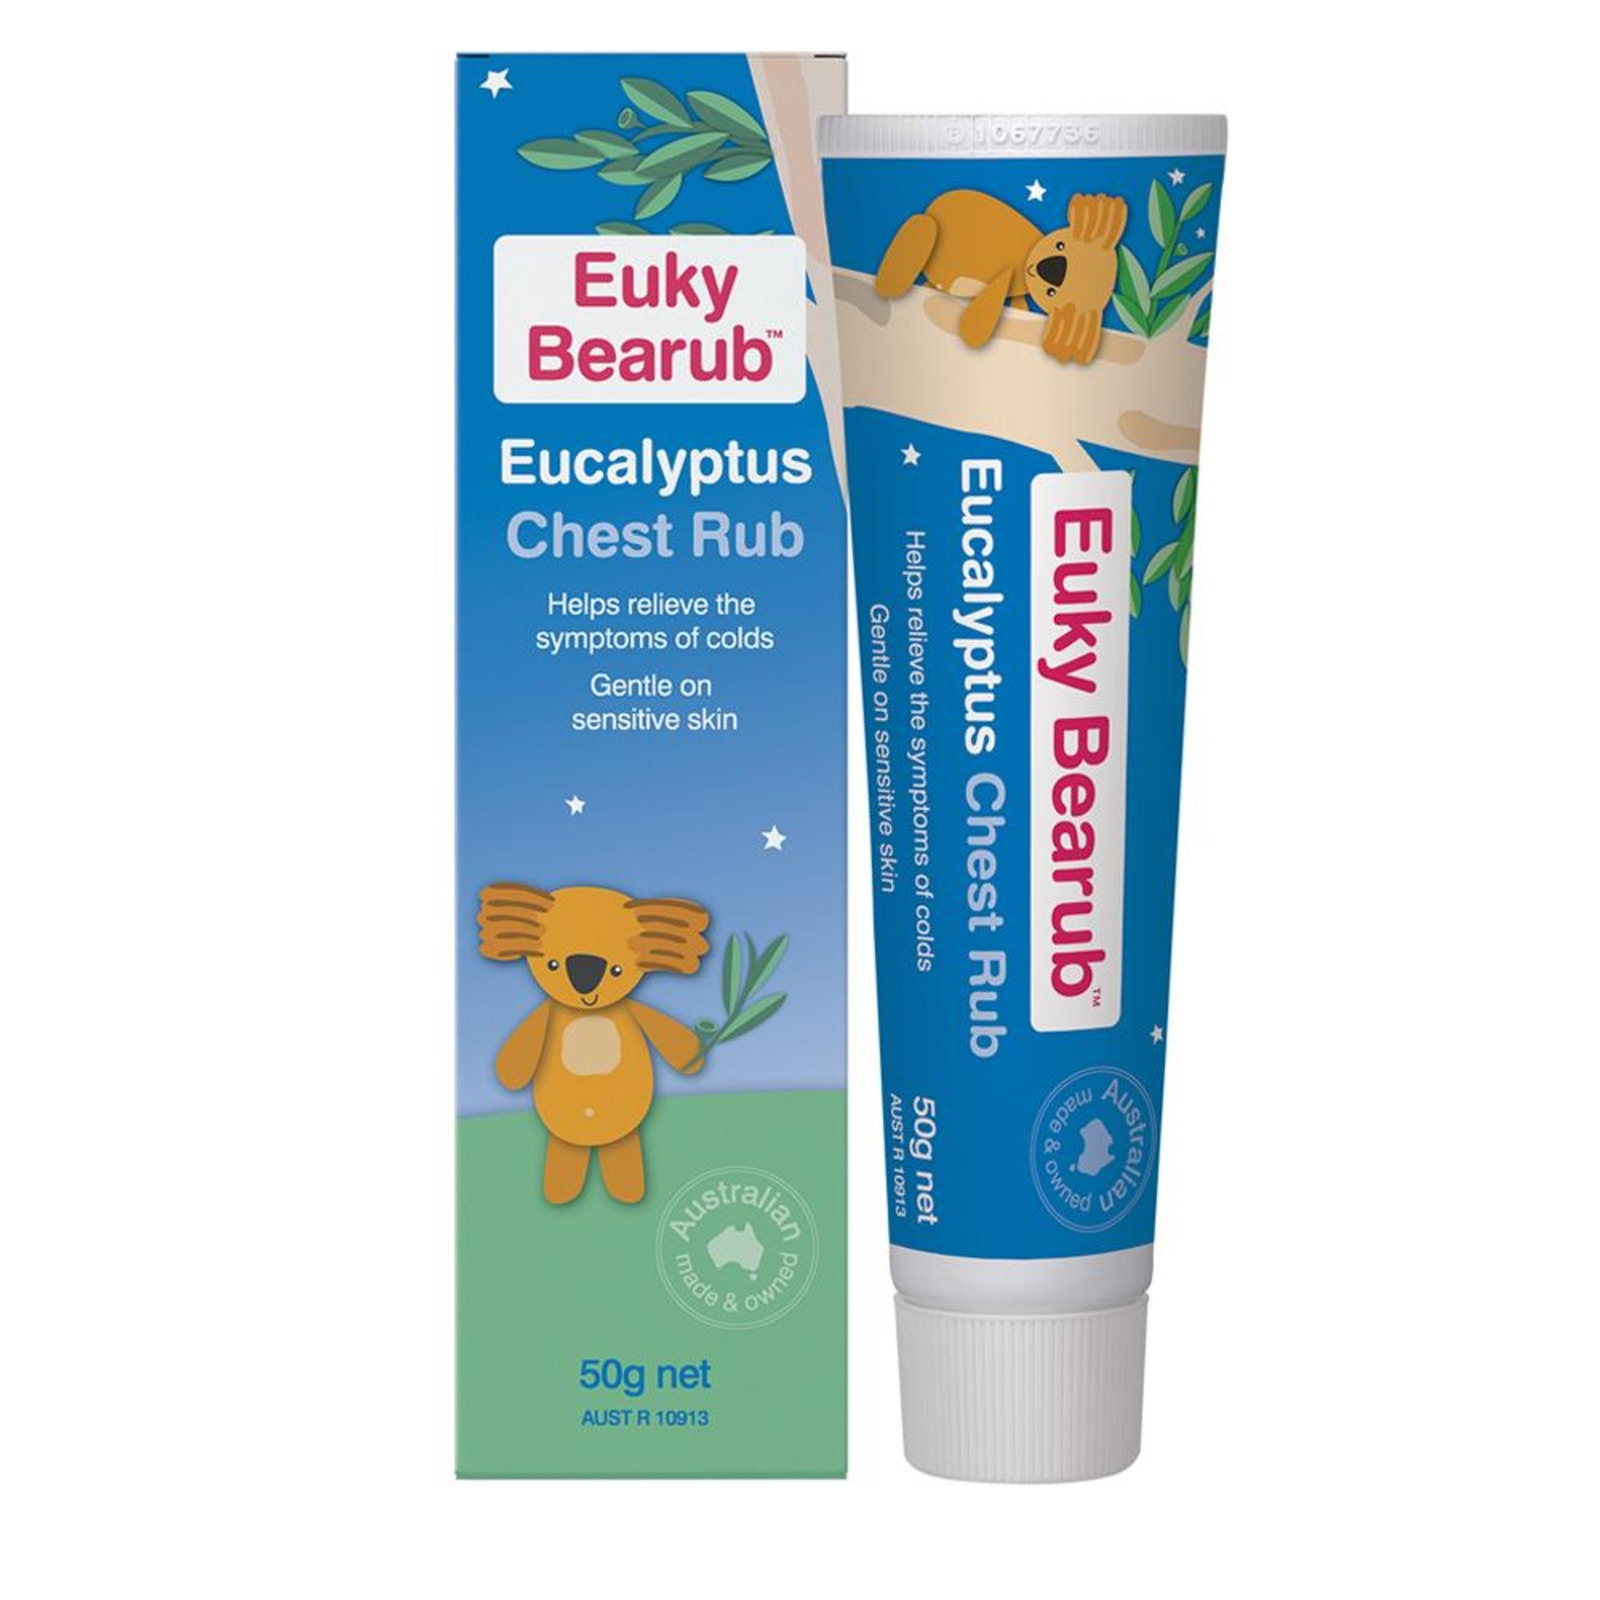 Euky Bear Bearub